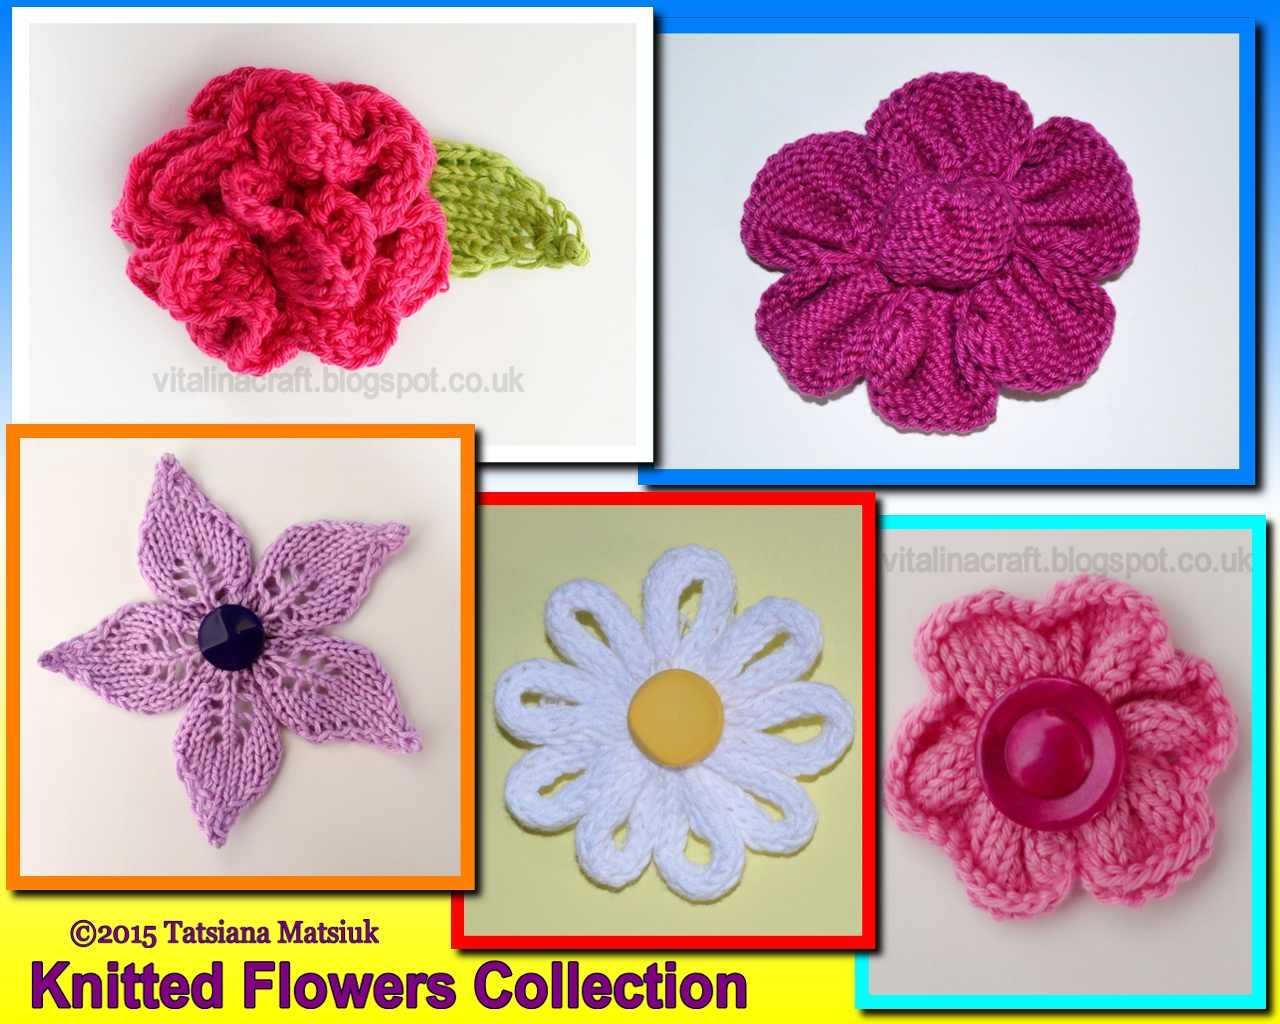 Knitted Flowers Collection | ViTalina Craft